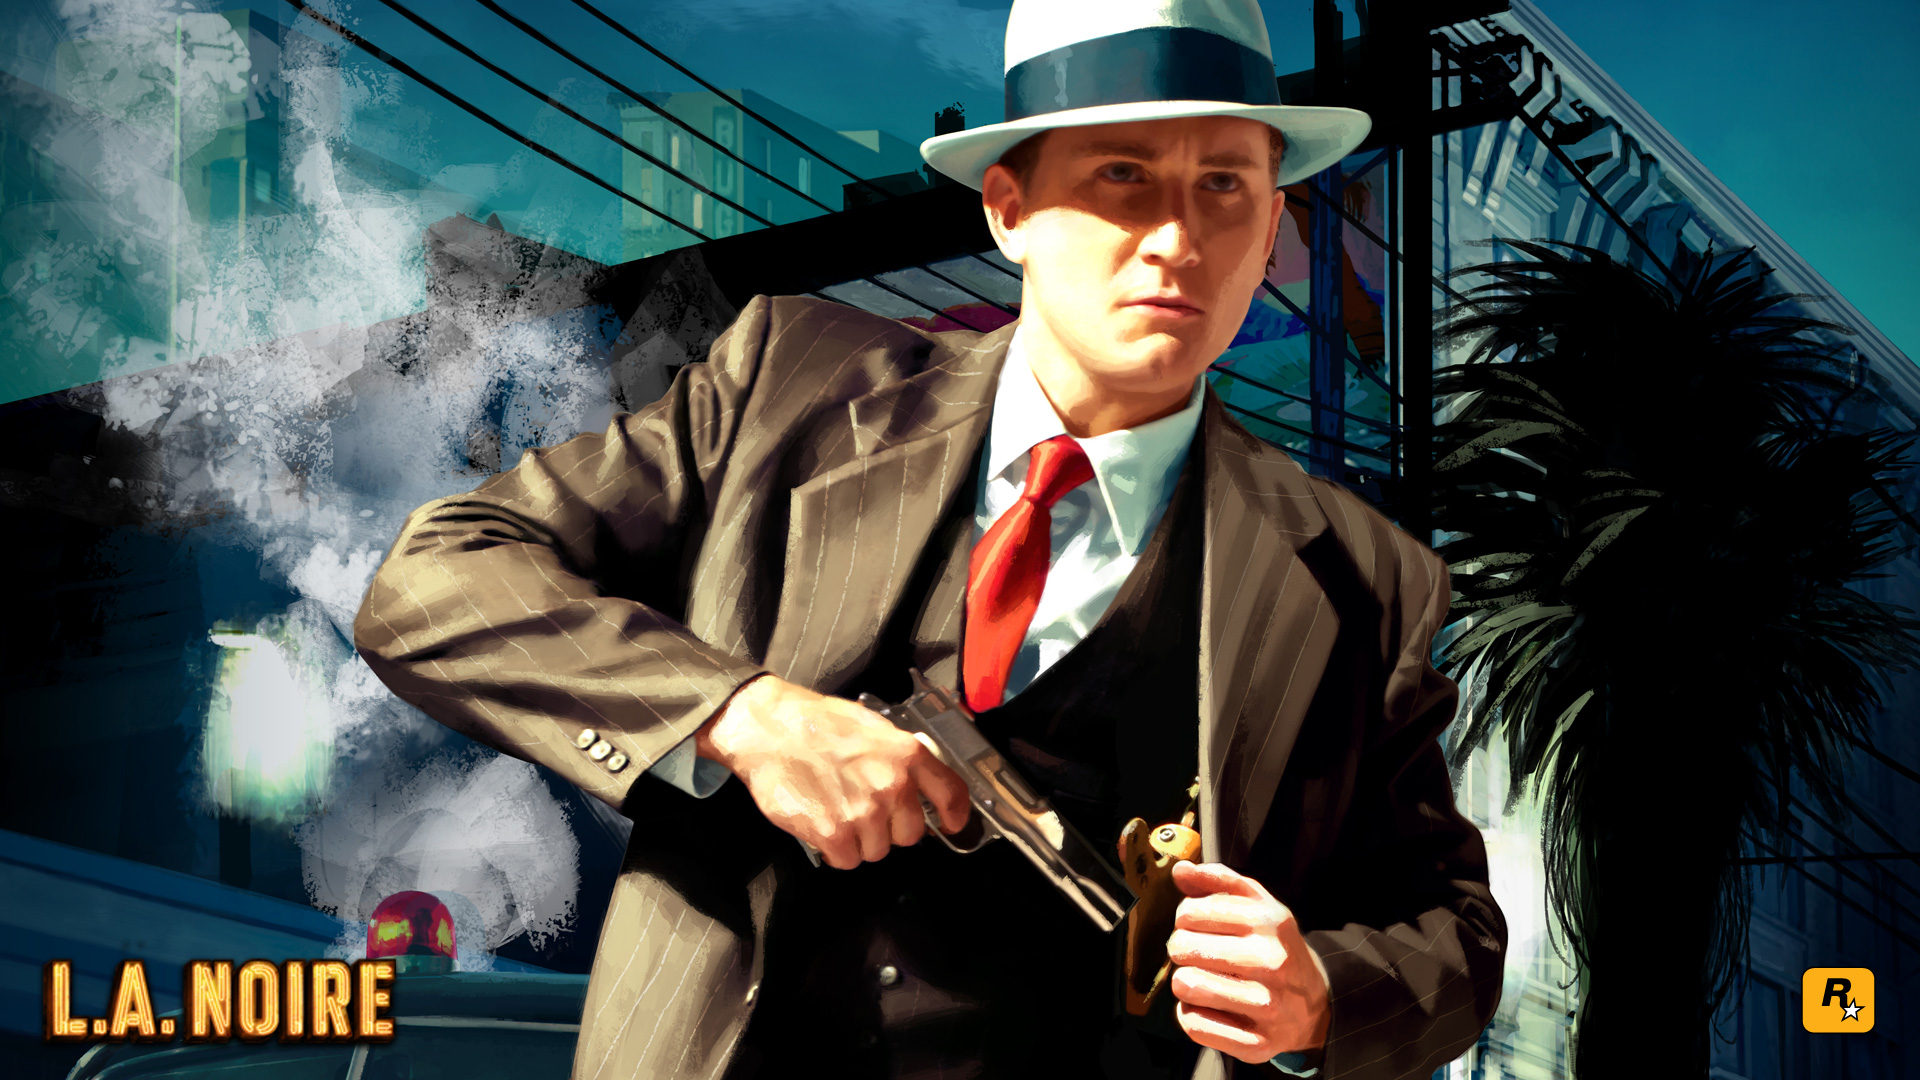 Video Game L.A. Noire Wallpaper Details and Download Free